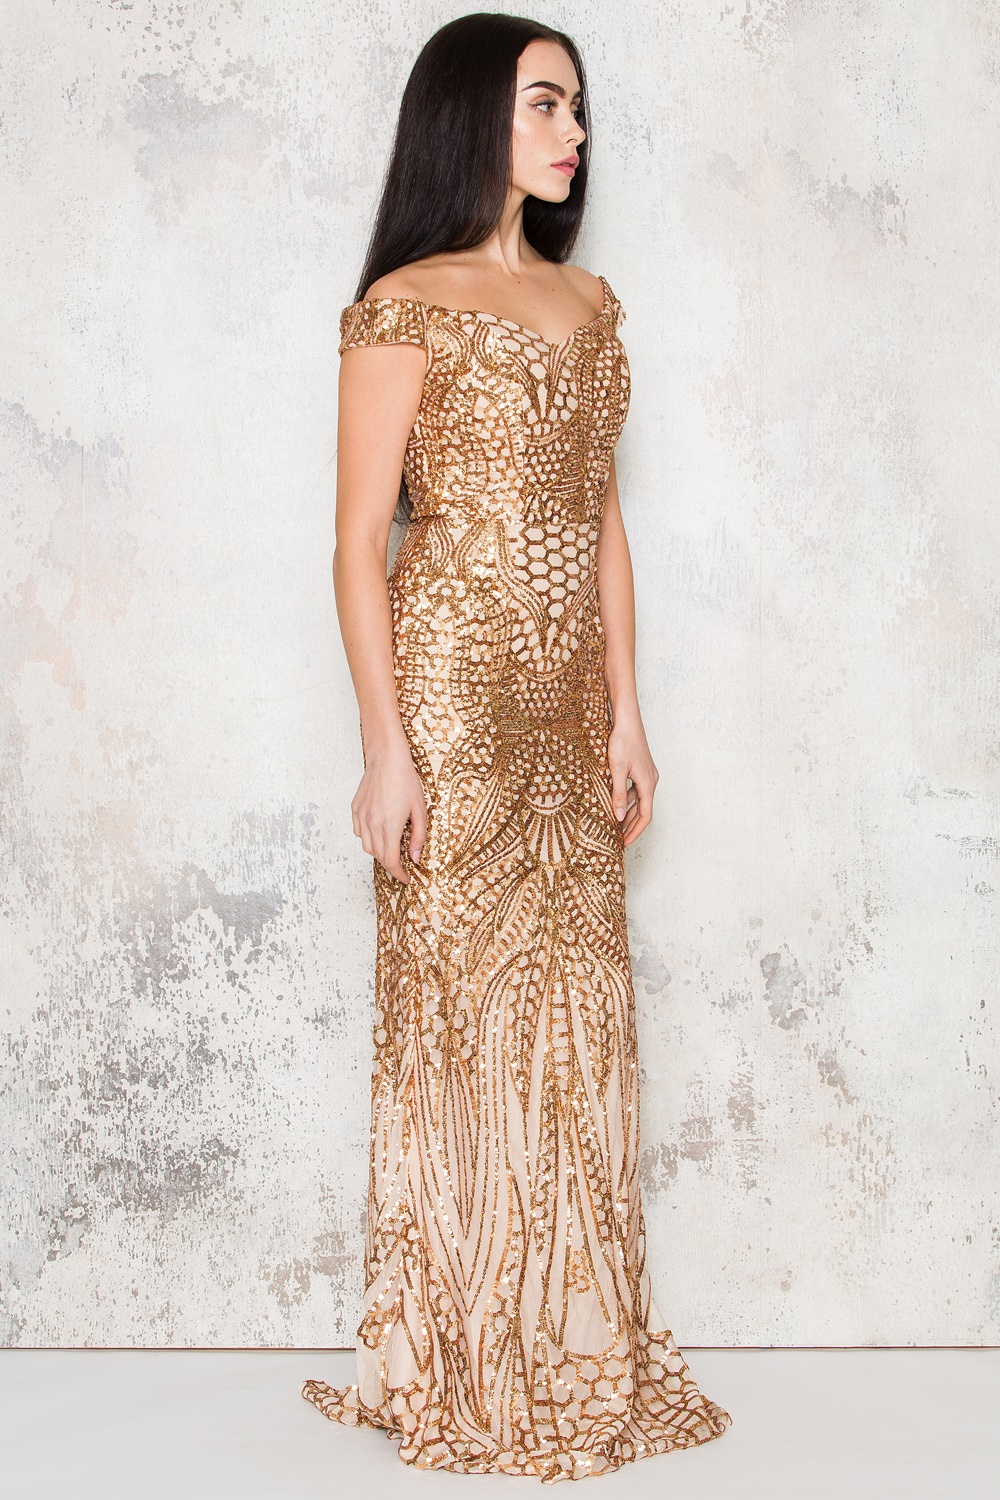 Herrera Maxi Dress